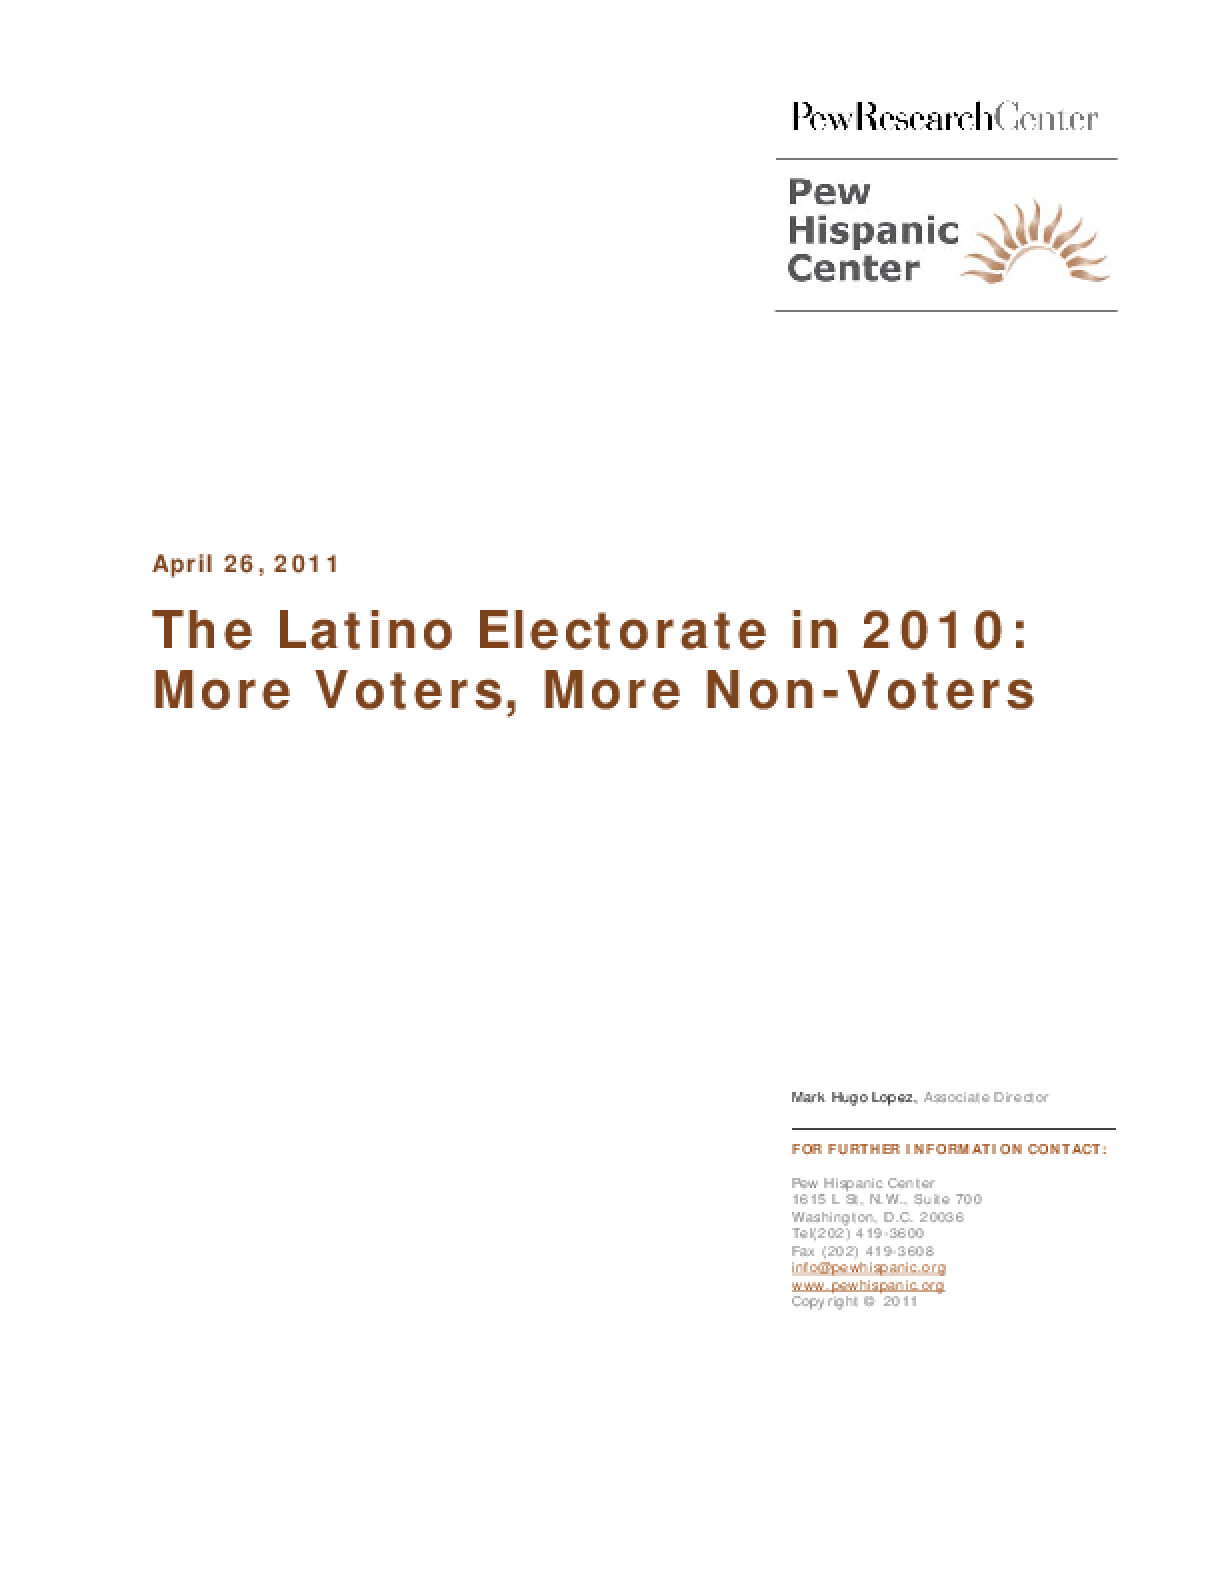 The Latino Electorate in 2010: More Voters, More Non-Voters